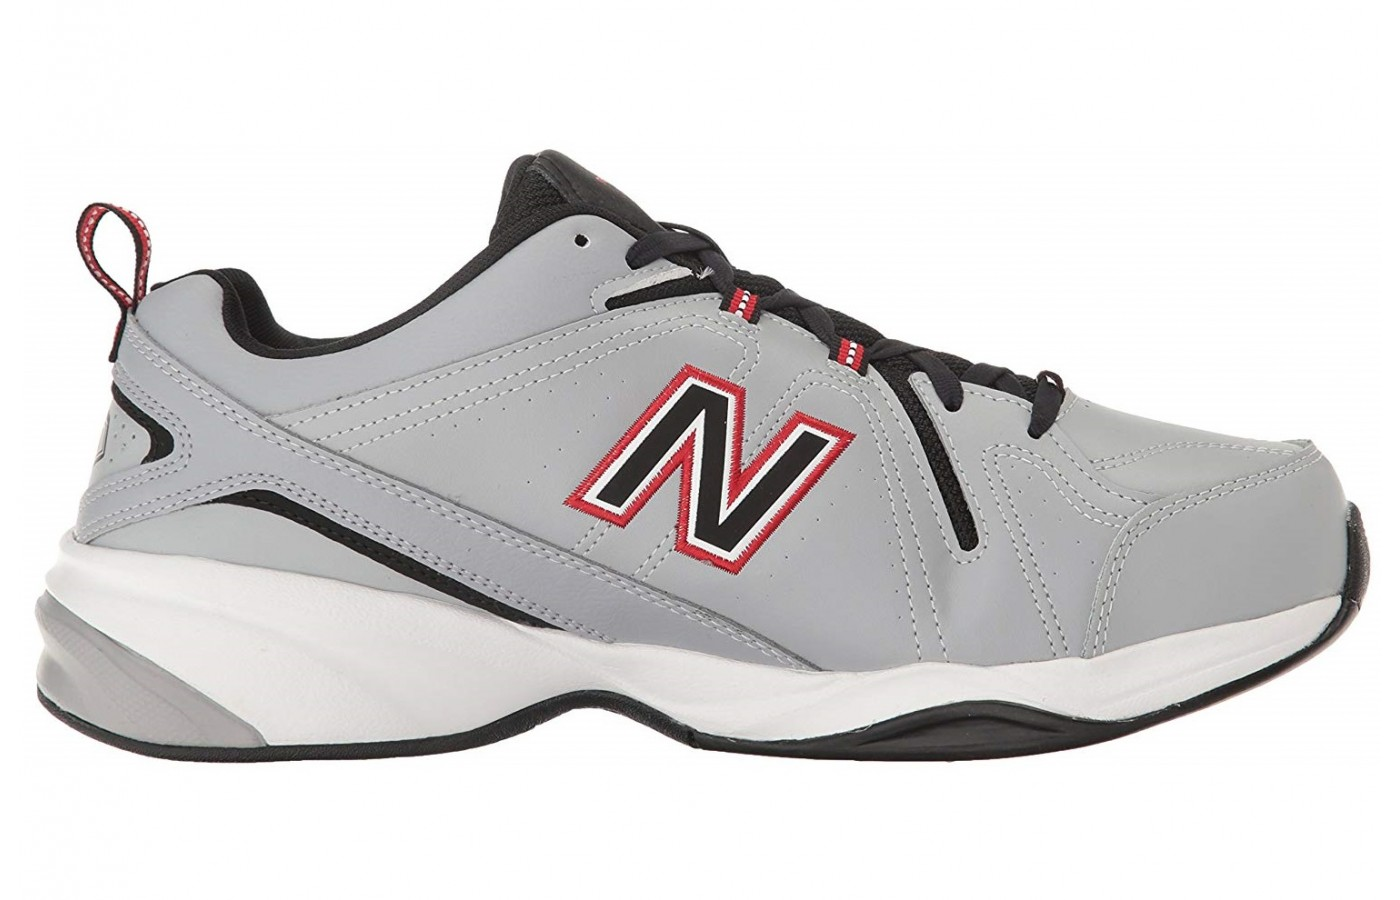 The New Balance 608v4 has an EVA-midsole for better support throughout the bottom of the foot.